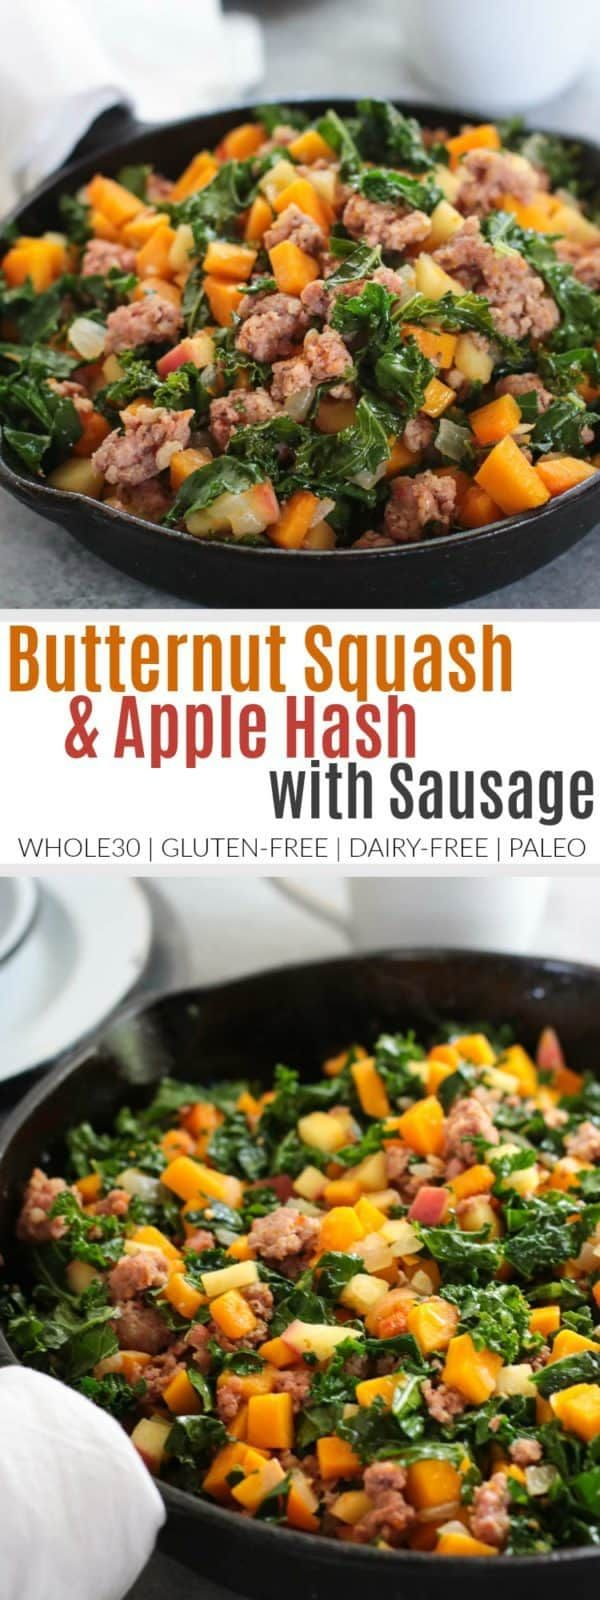 Butternut Squash and Apple Hash with Sausage #fallrecipesdinner